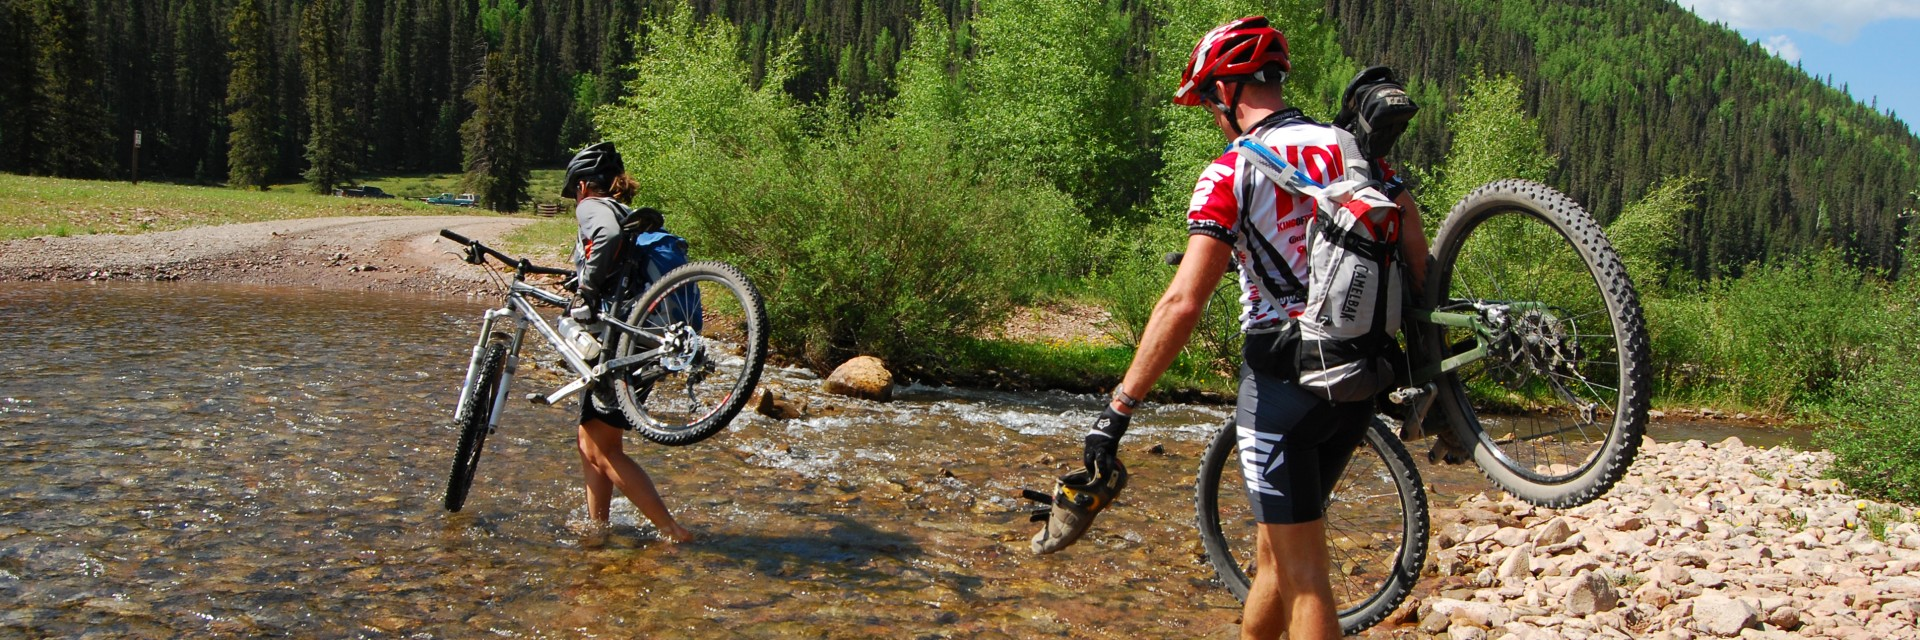 Fording stream on the Colorado Trail Singletrack - advanced mountain biking